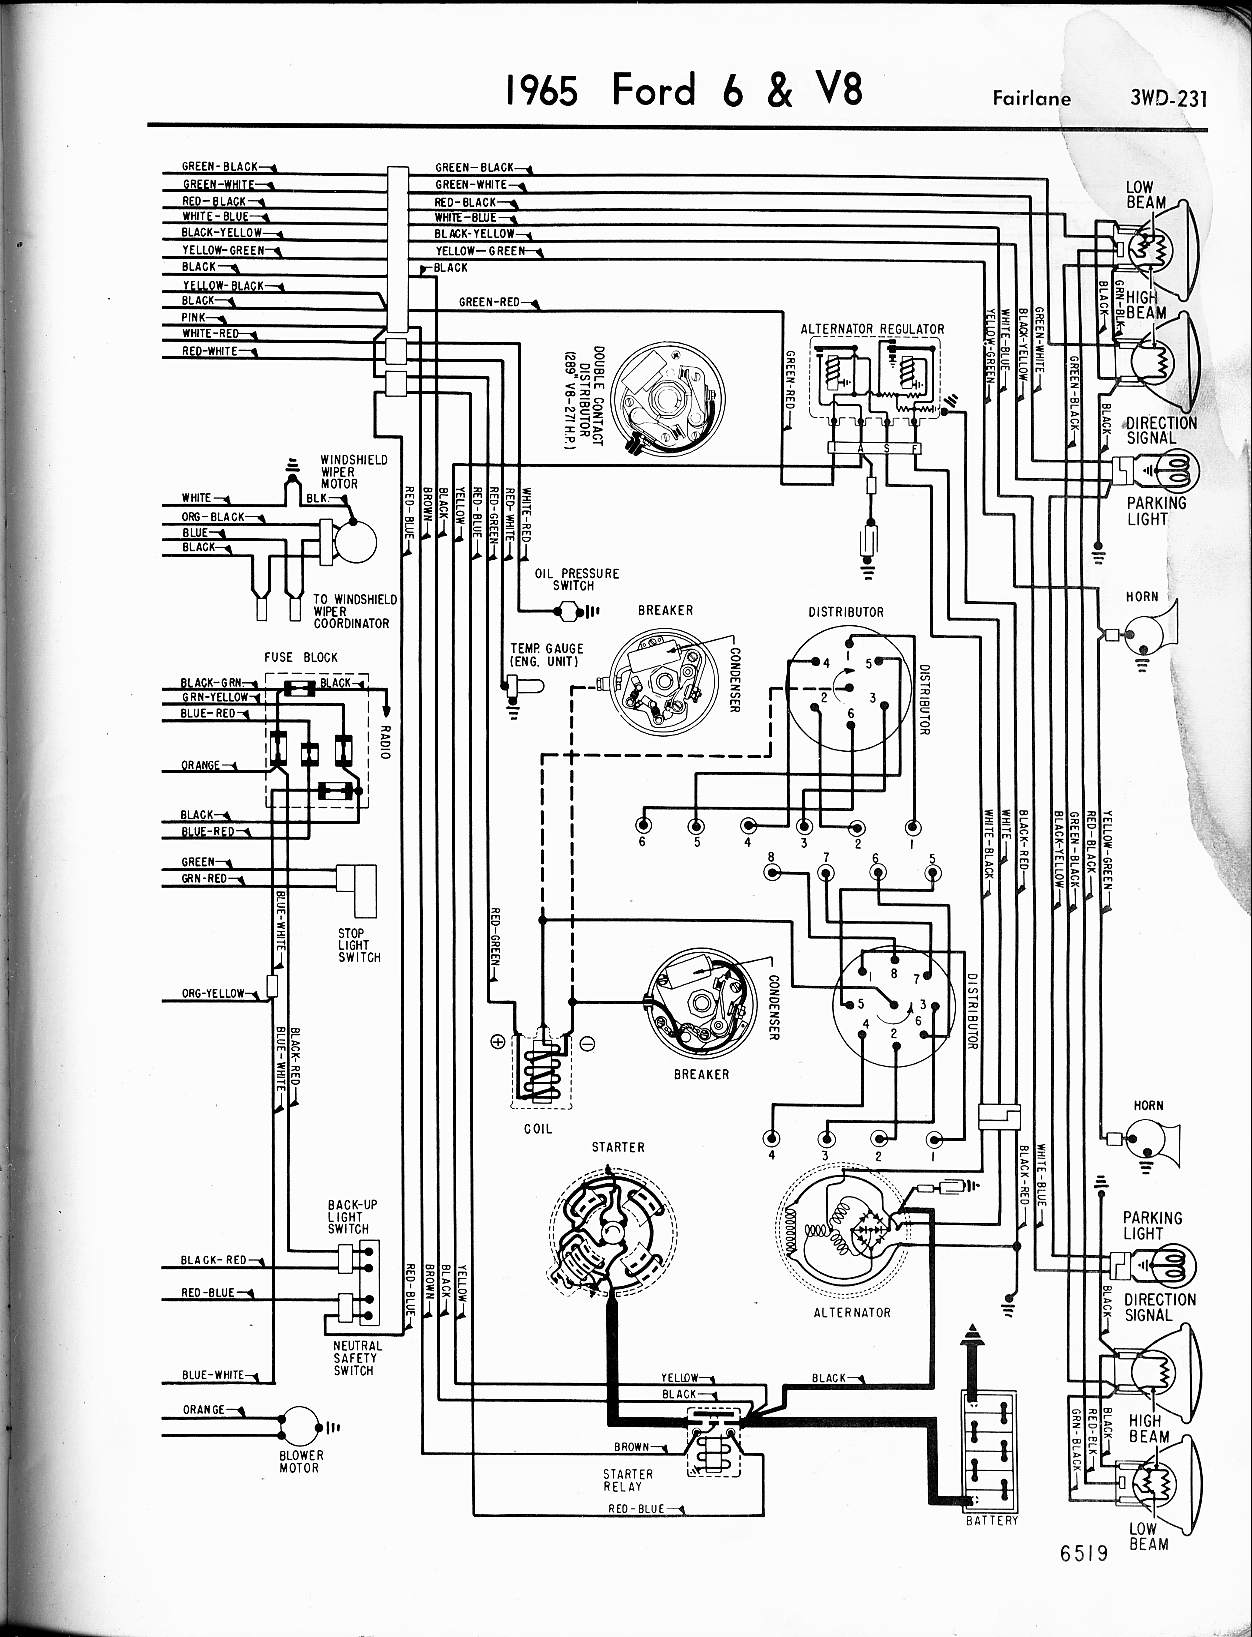 57 65 Ford Wiring Diagrams Some T Diagram 1965 6 V8 Fairlane Right